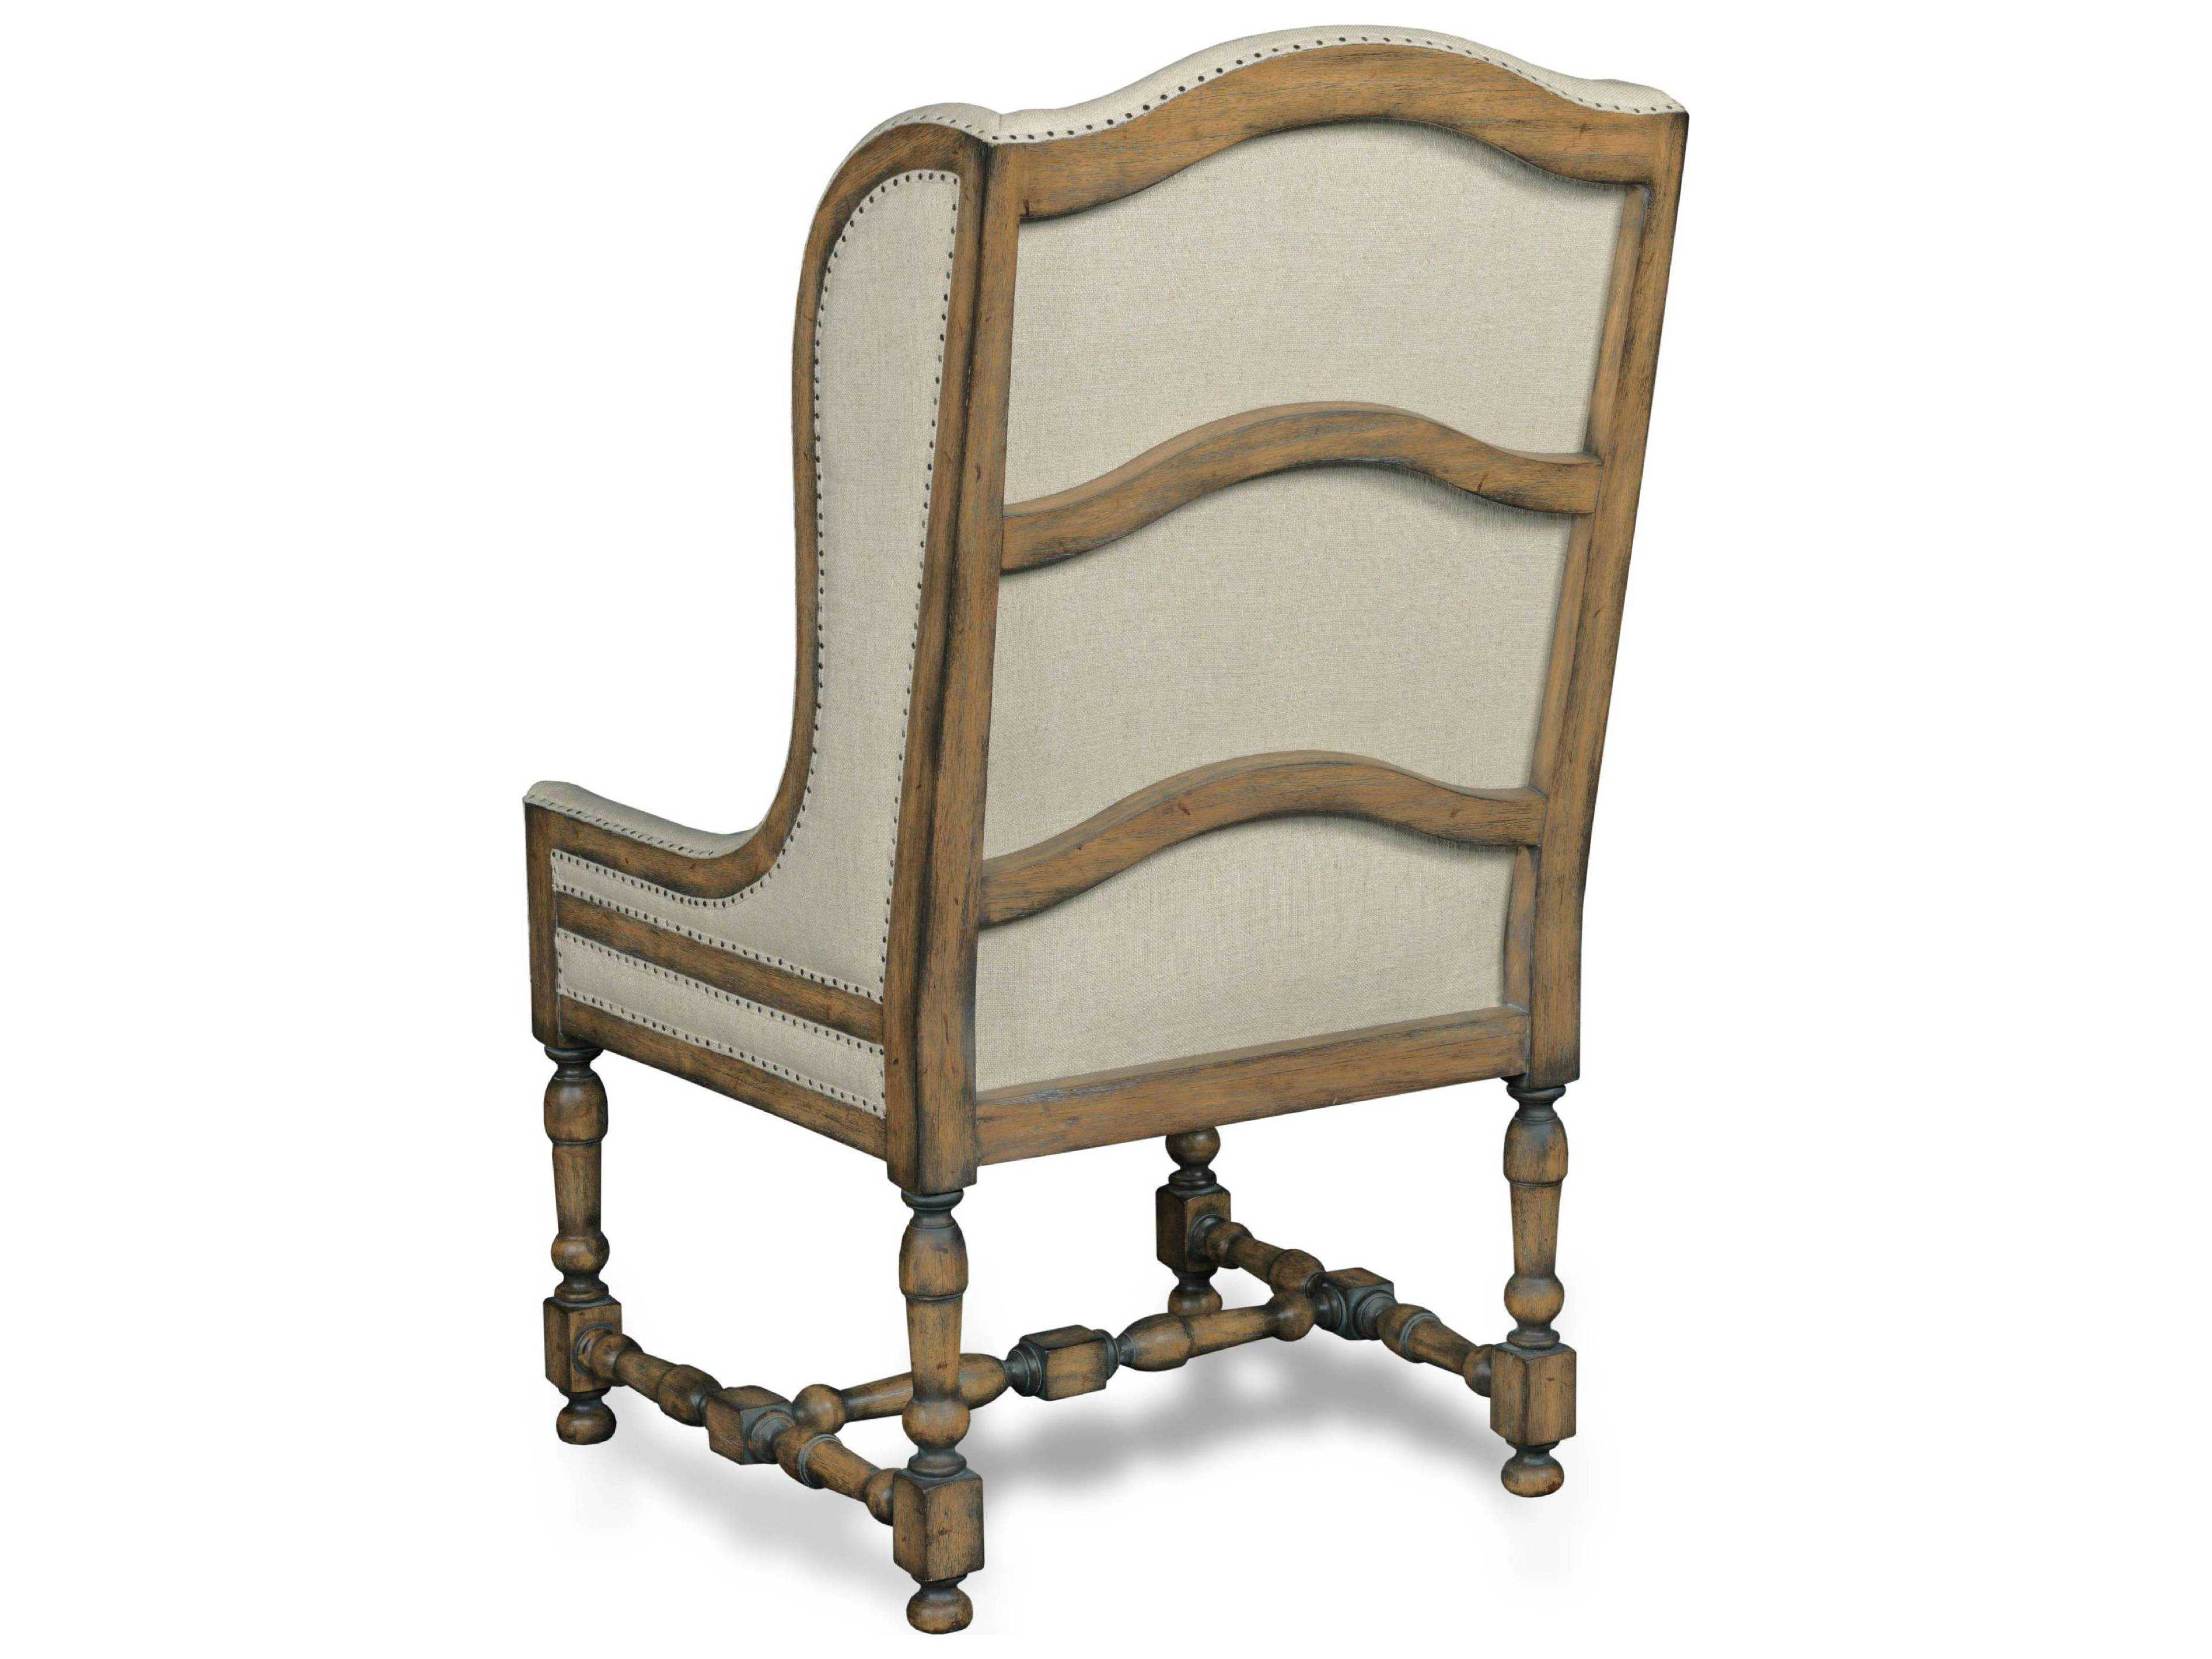 dark wood dining chairs spandex chair covers aliexpress hooker furniture davalle chateau linen